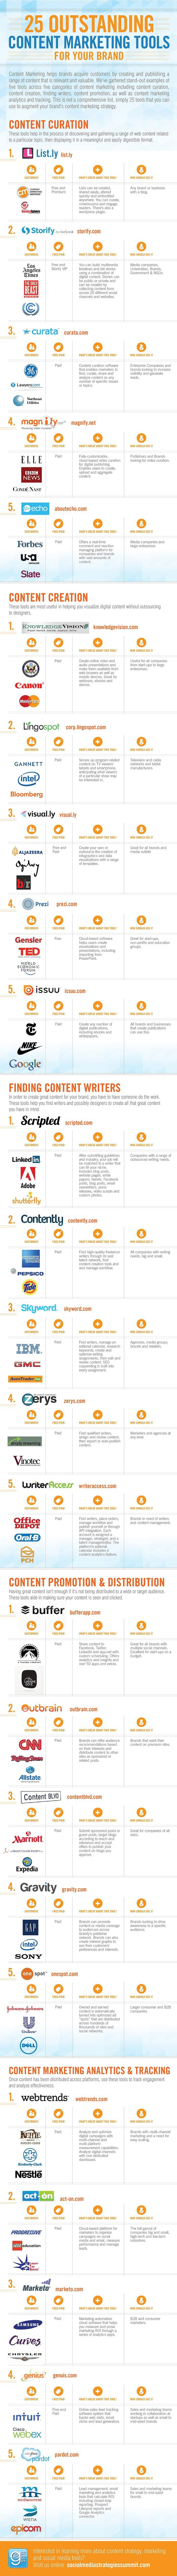 Stellar list of 25 content marketing tools that help to curate and amplify content marketing activities.